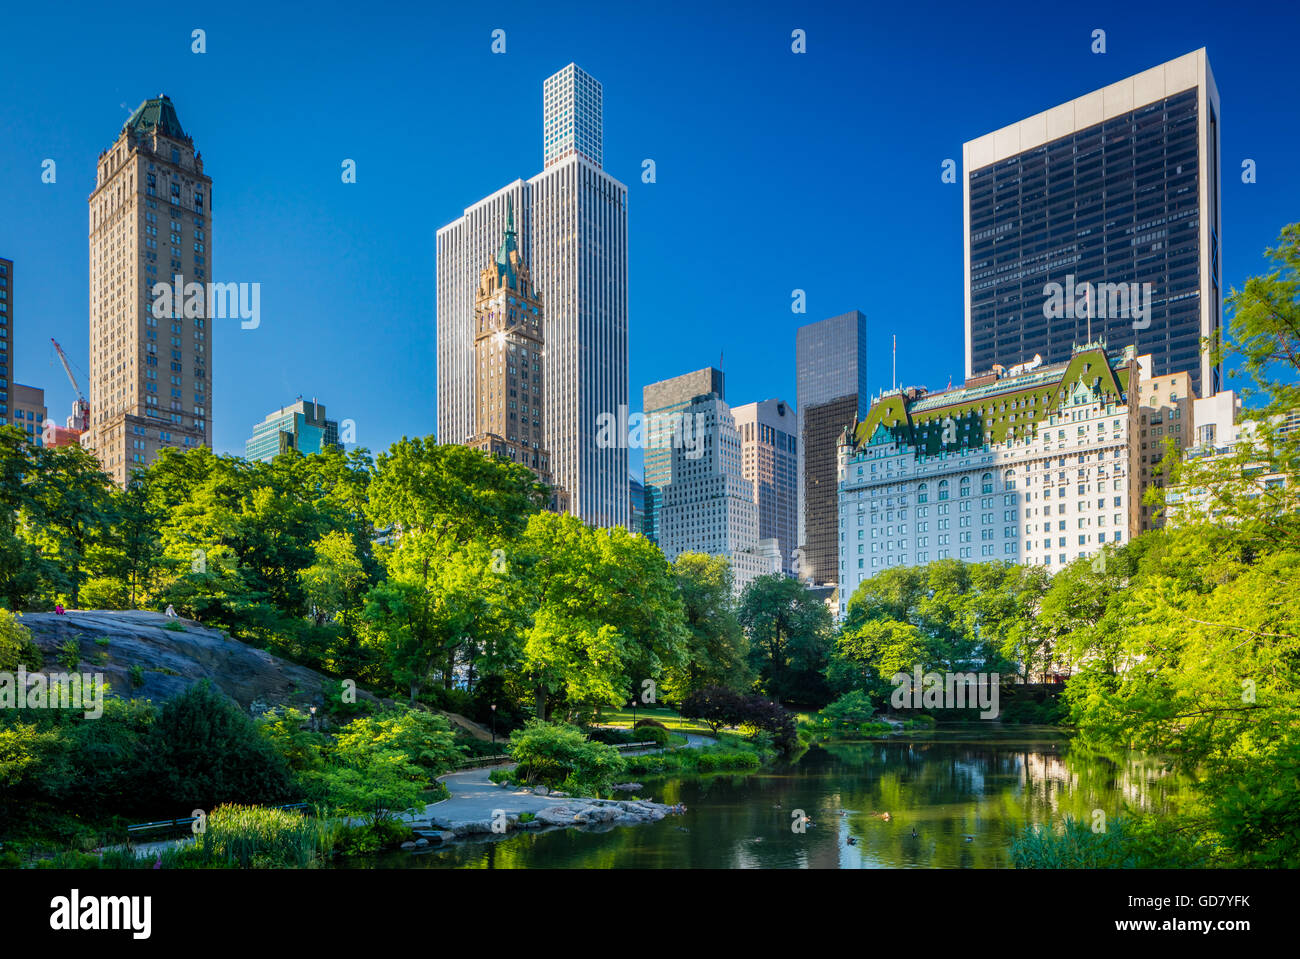 The Pond in Central Park, New York City, with midtown buildings visible in the distance Stock Photo